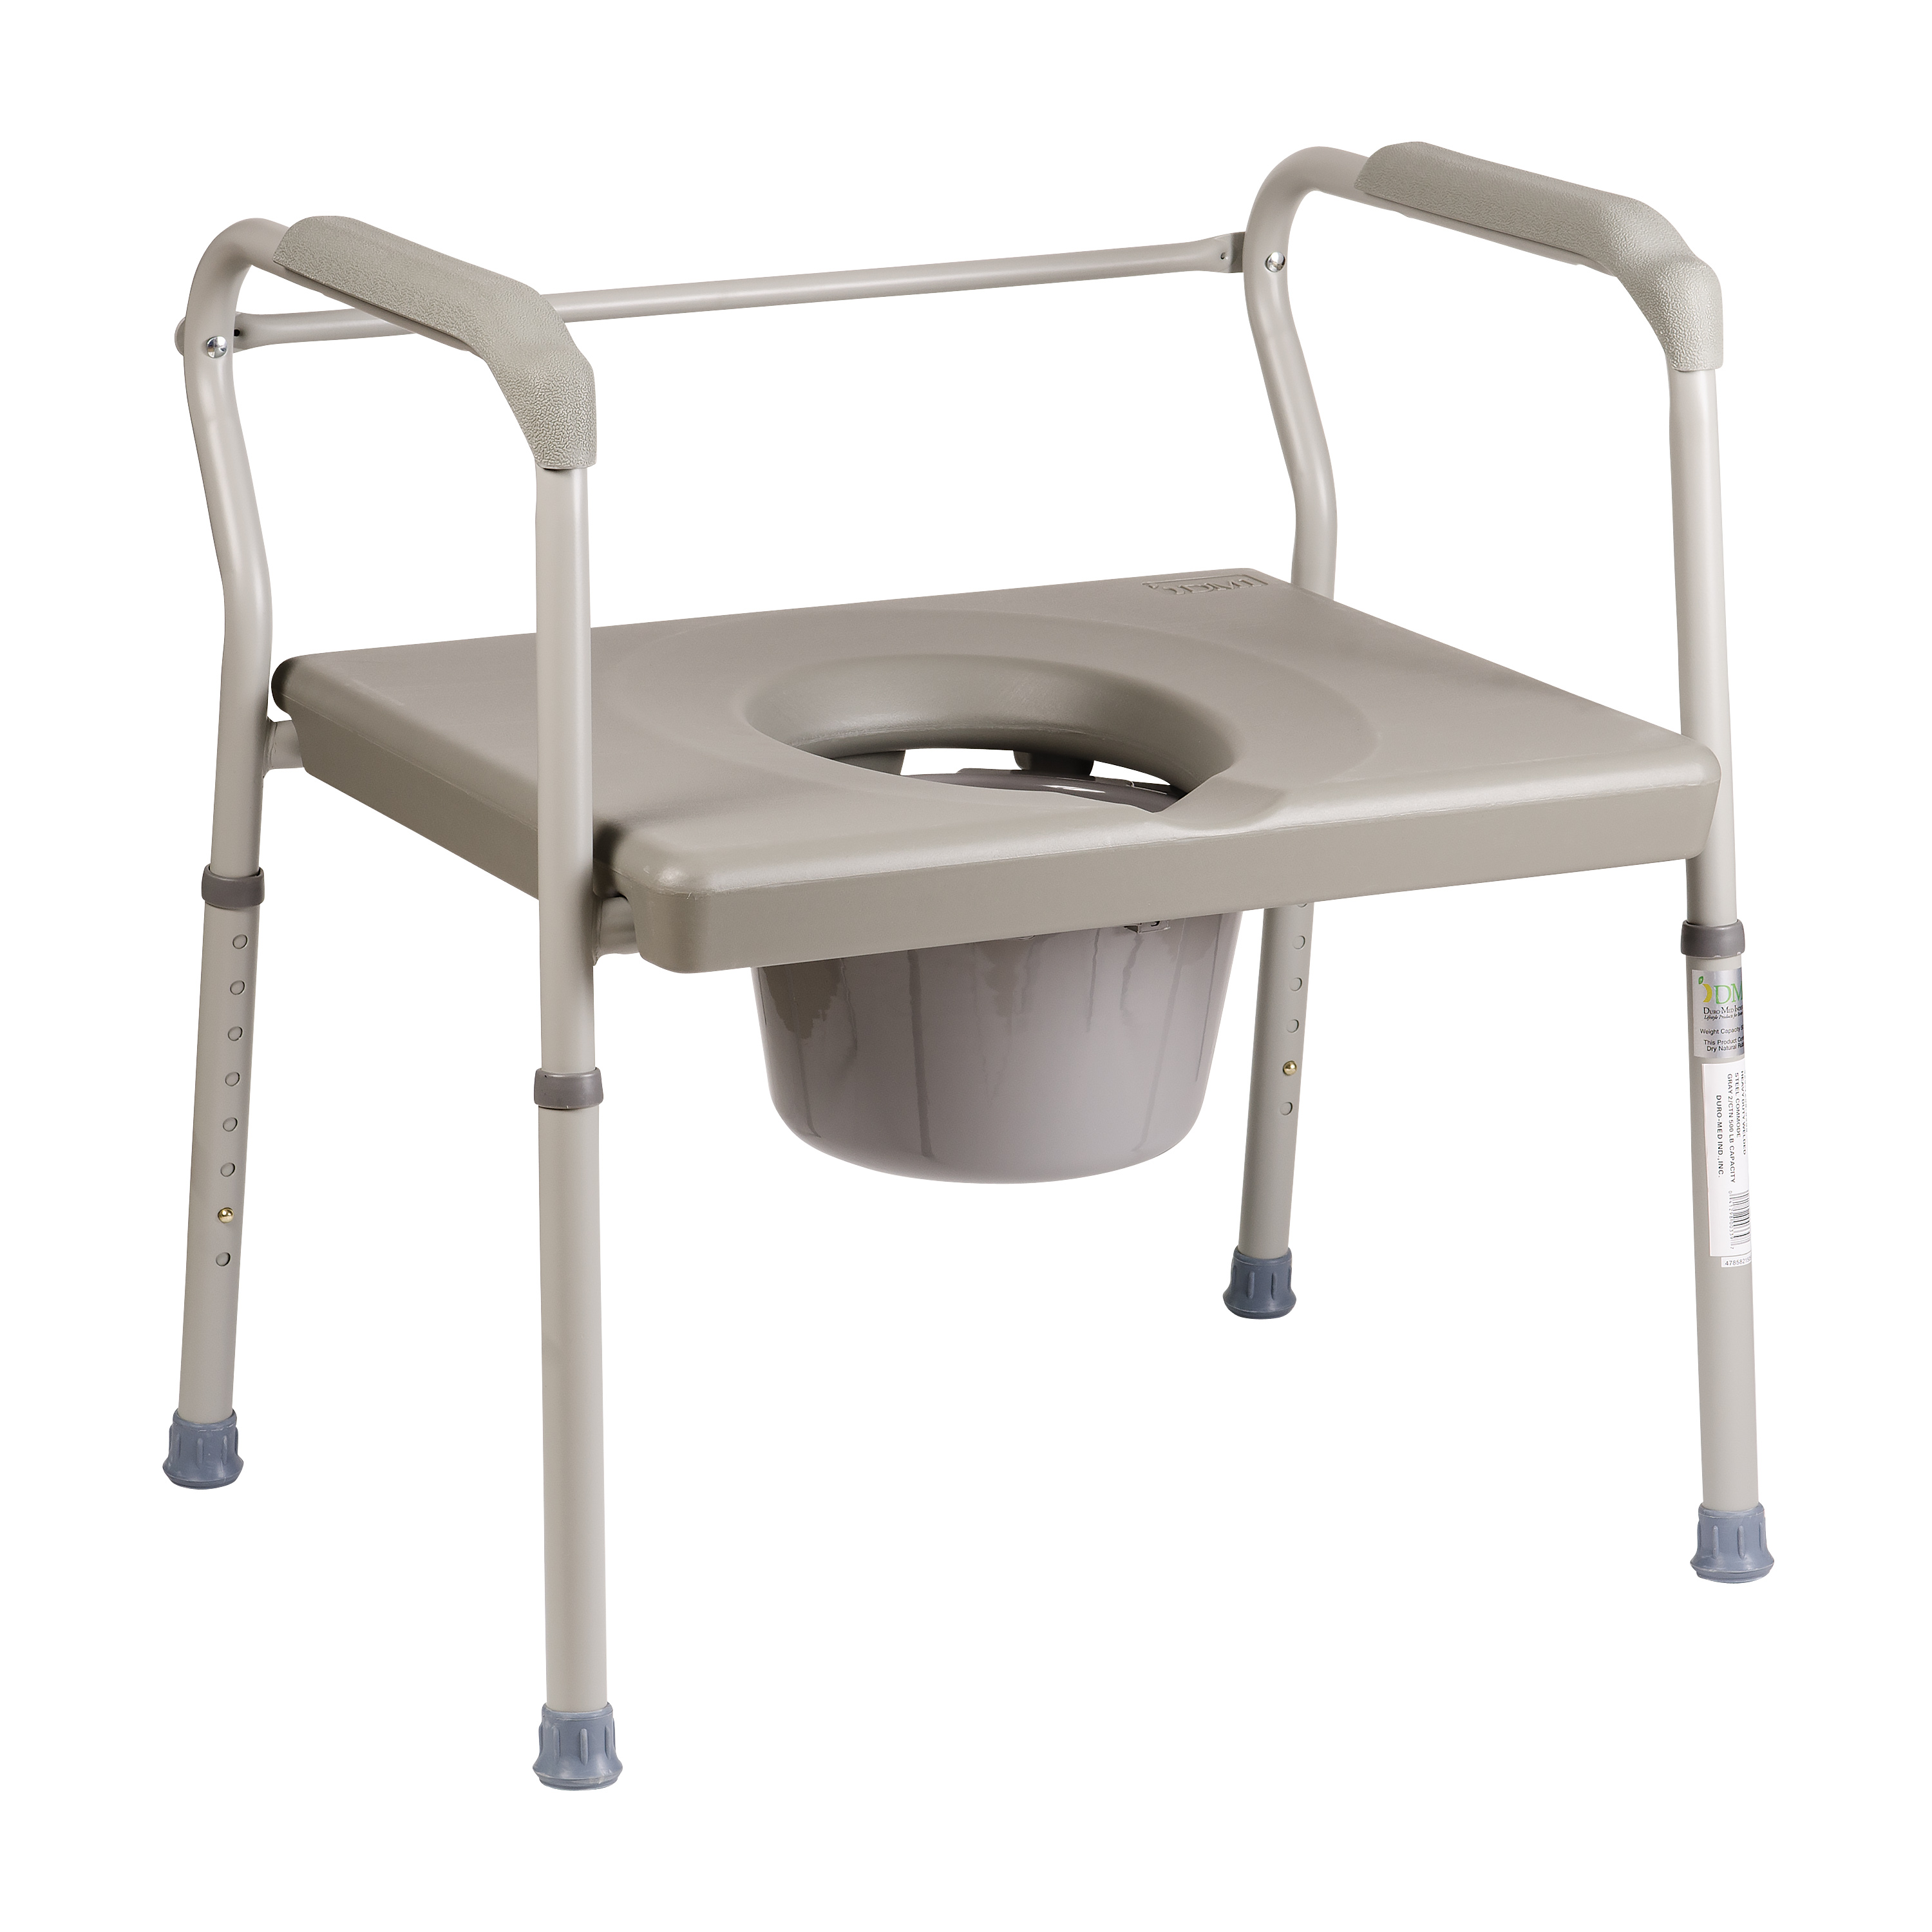 DMI Heavy Duty Bariatric Portable Bedside Commode, Toilet Safety Frame, Raised Toilet Seat, Extra Wide, Adjustable Legs, Gray